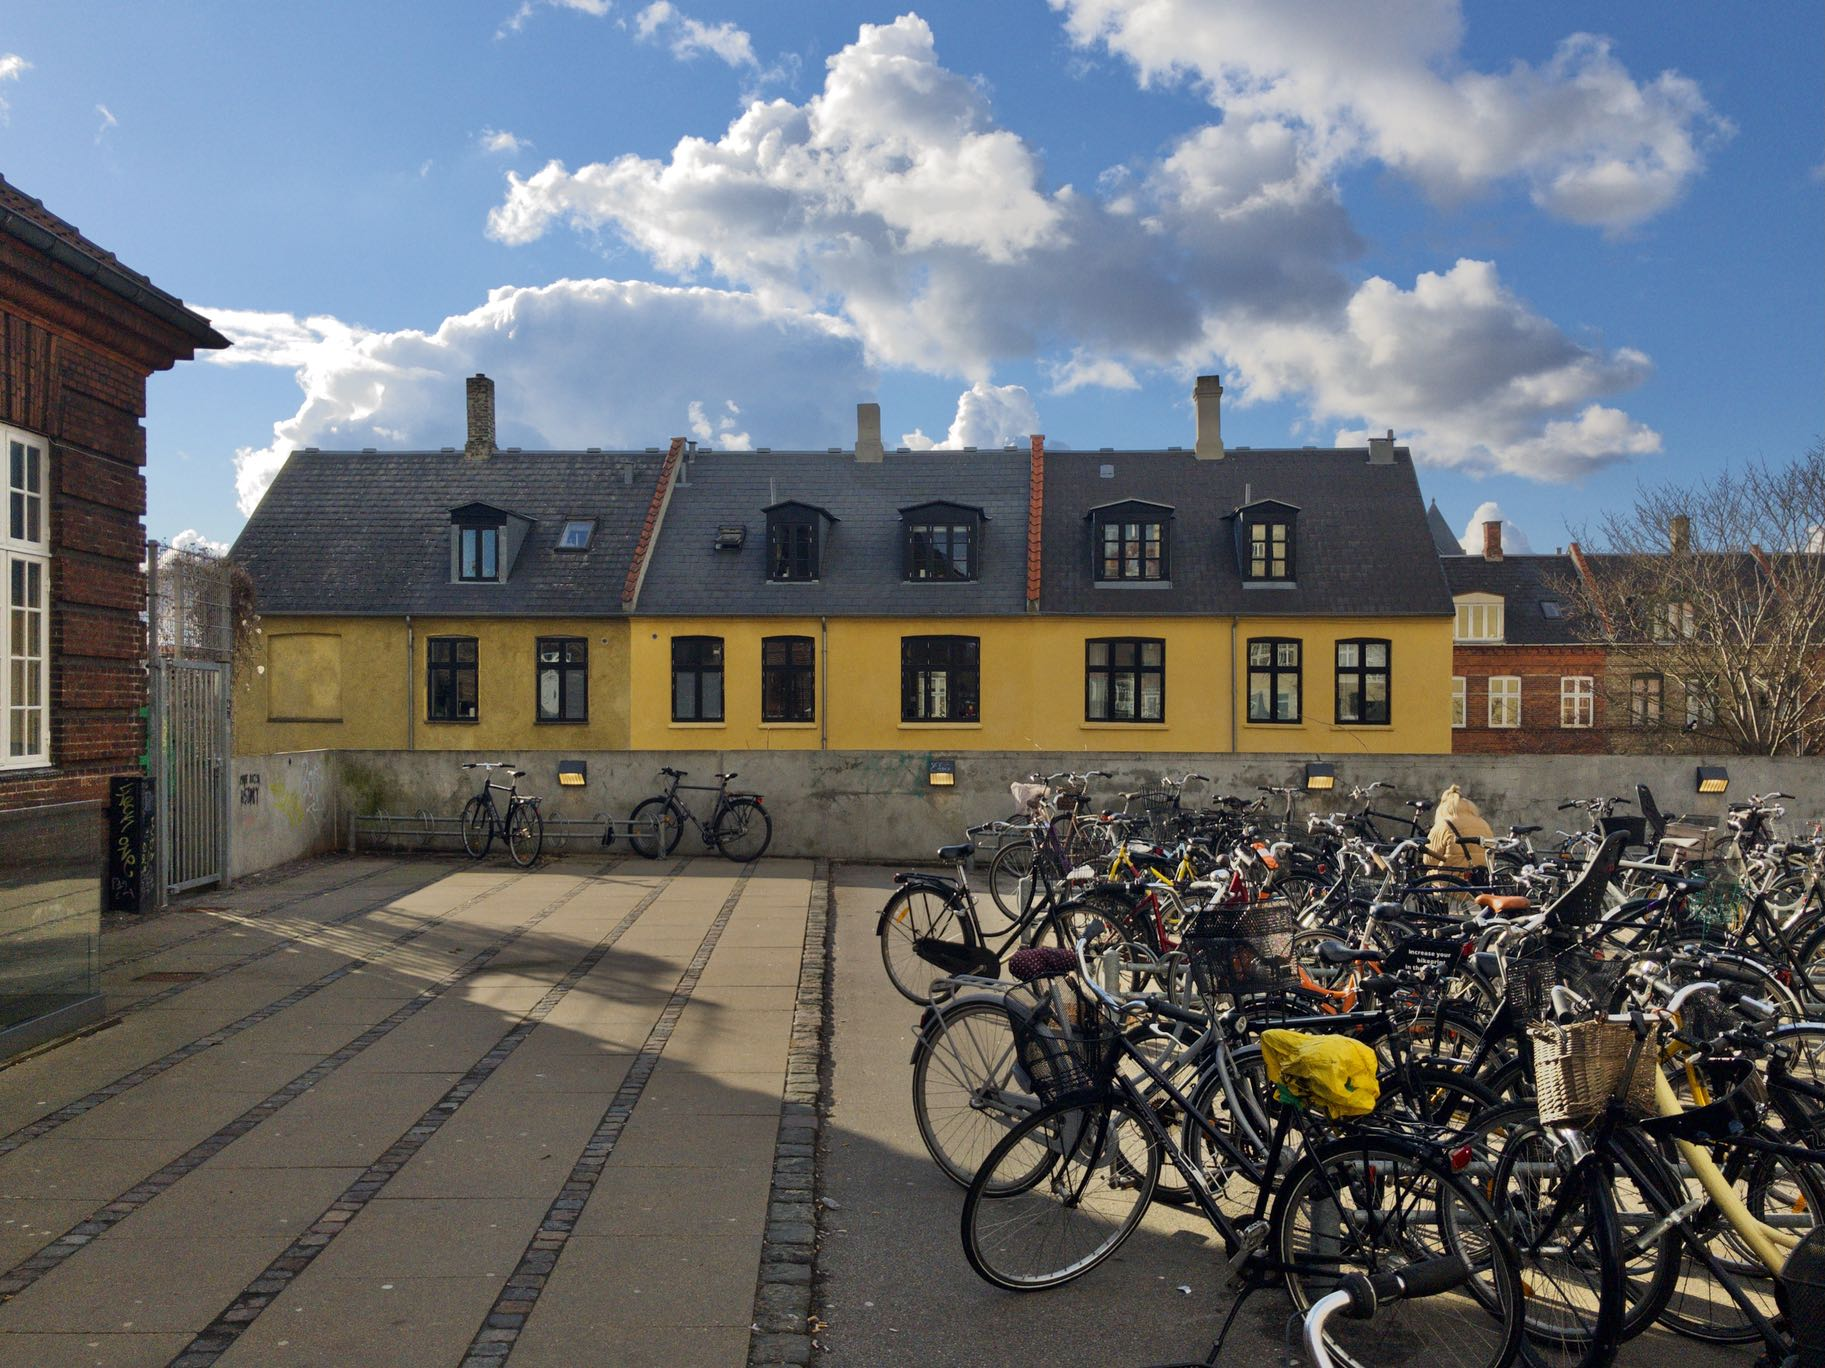 Valby station. A yellow building. Bicycles. Clouds. Had to dig into the RAW file to get the exposure of the clouds to work.